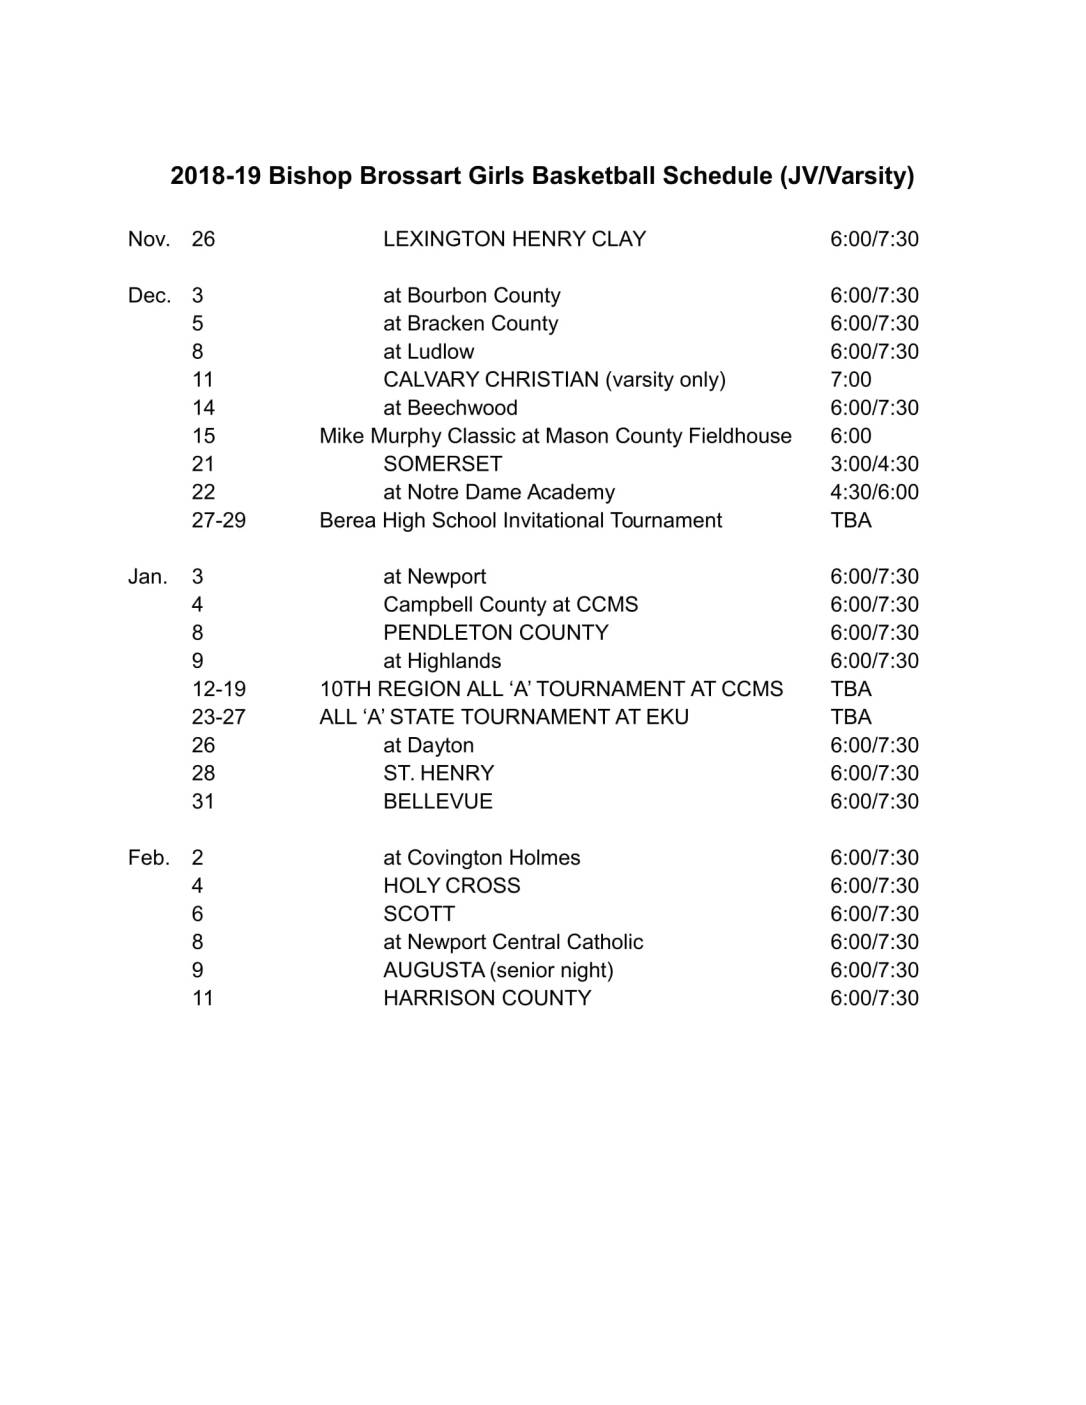 2019 Bishop Brossart Girls Basketball Schedule VarJV-1